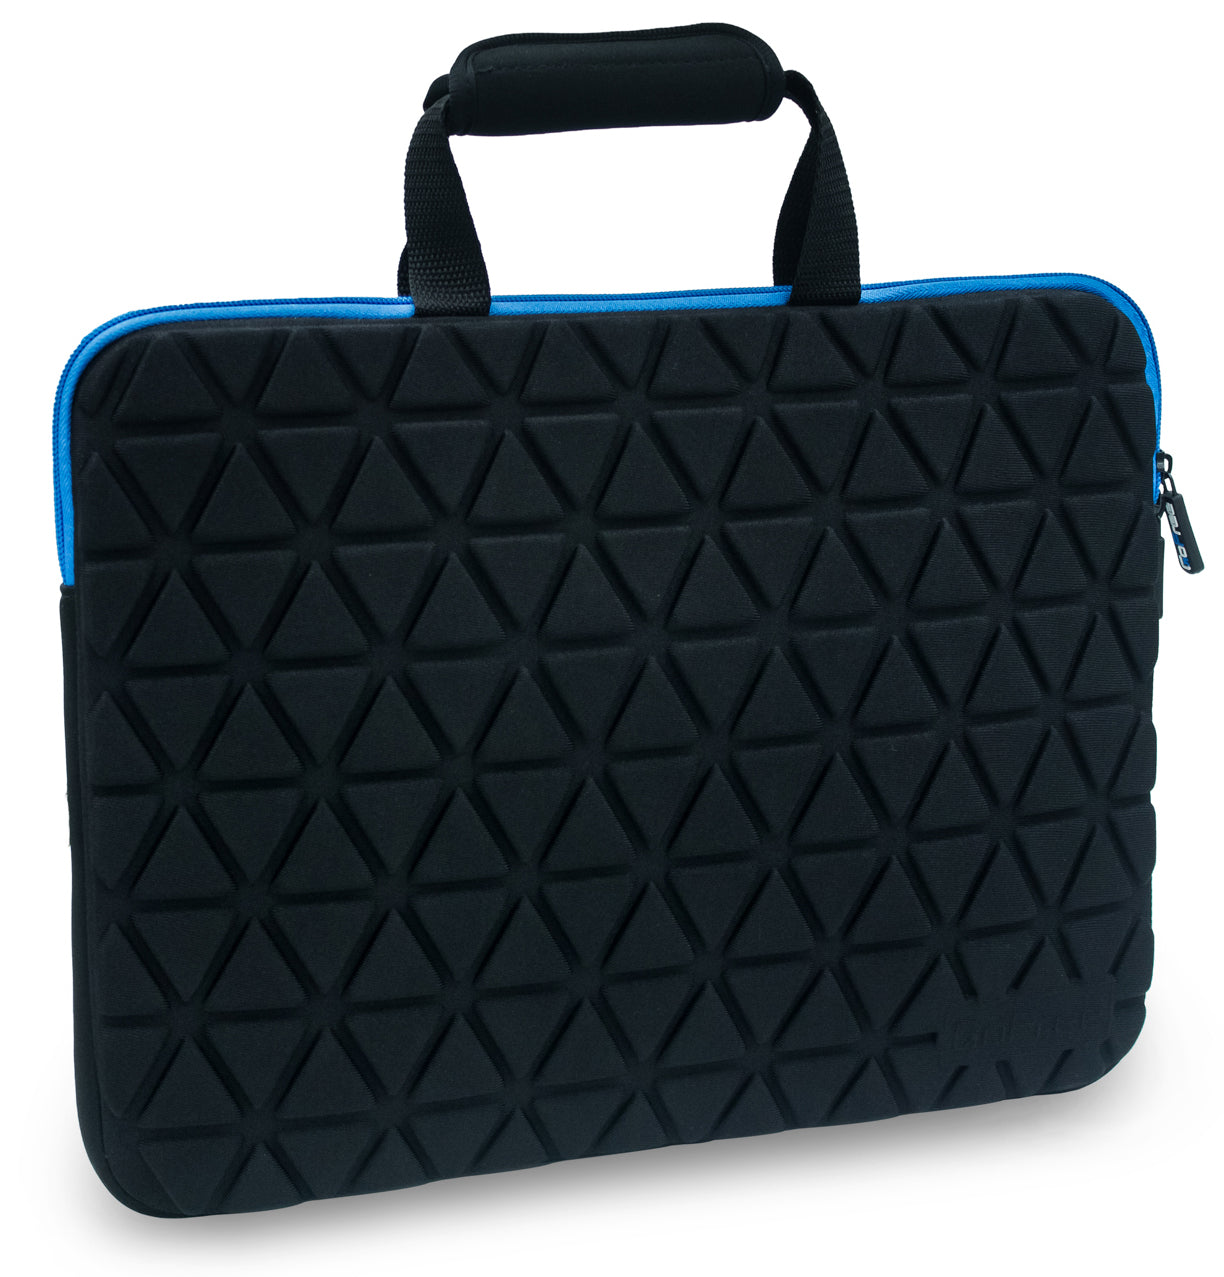 GoFree Guardian Series Ultra Compact 13 inch Laptop Sleeve Bag for Macbook Air / Pro & Laptops Up to 13.3 inches (Black w/ Azure Blue Accents)